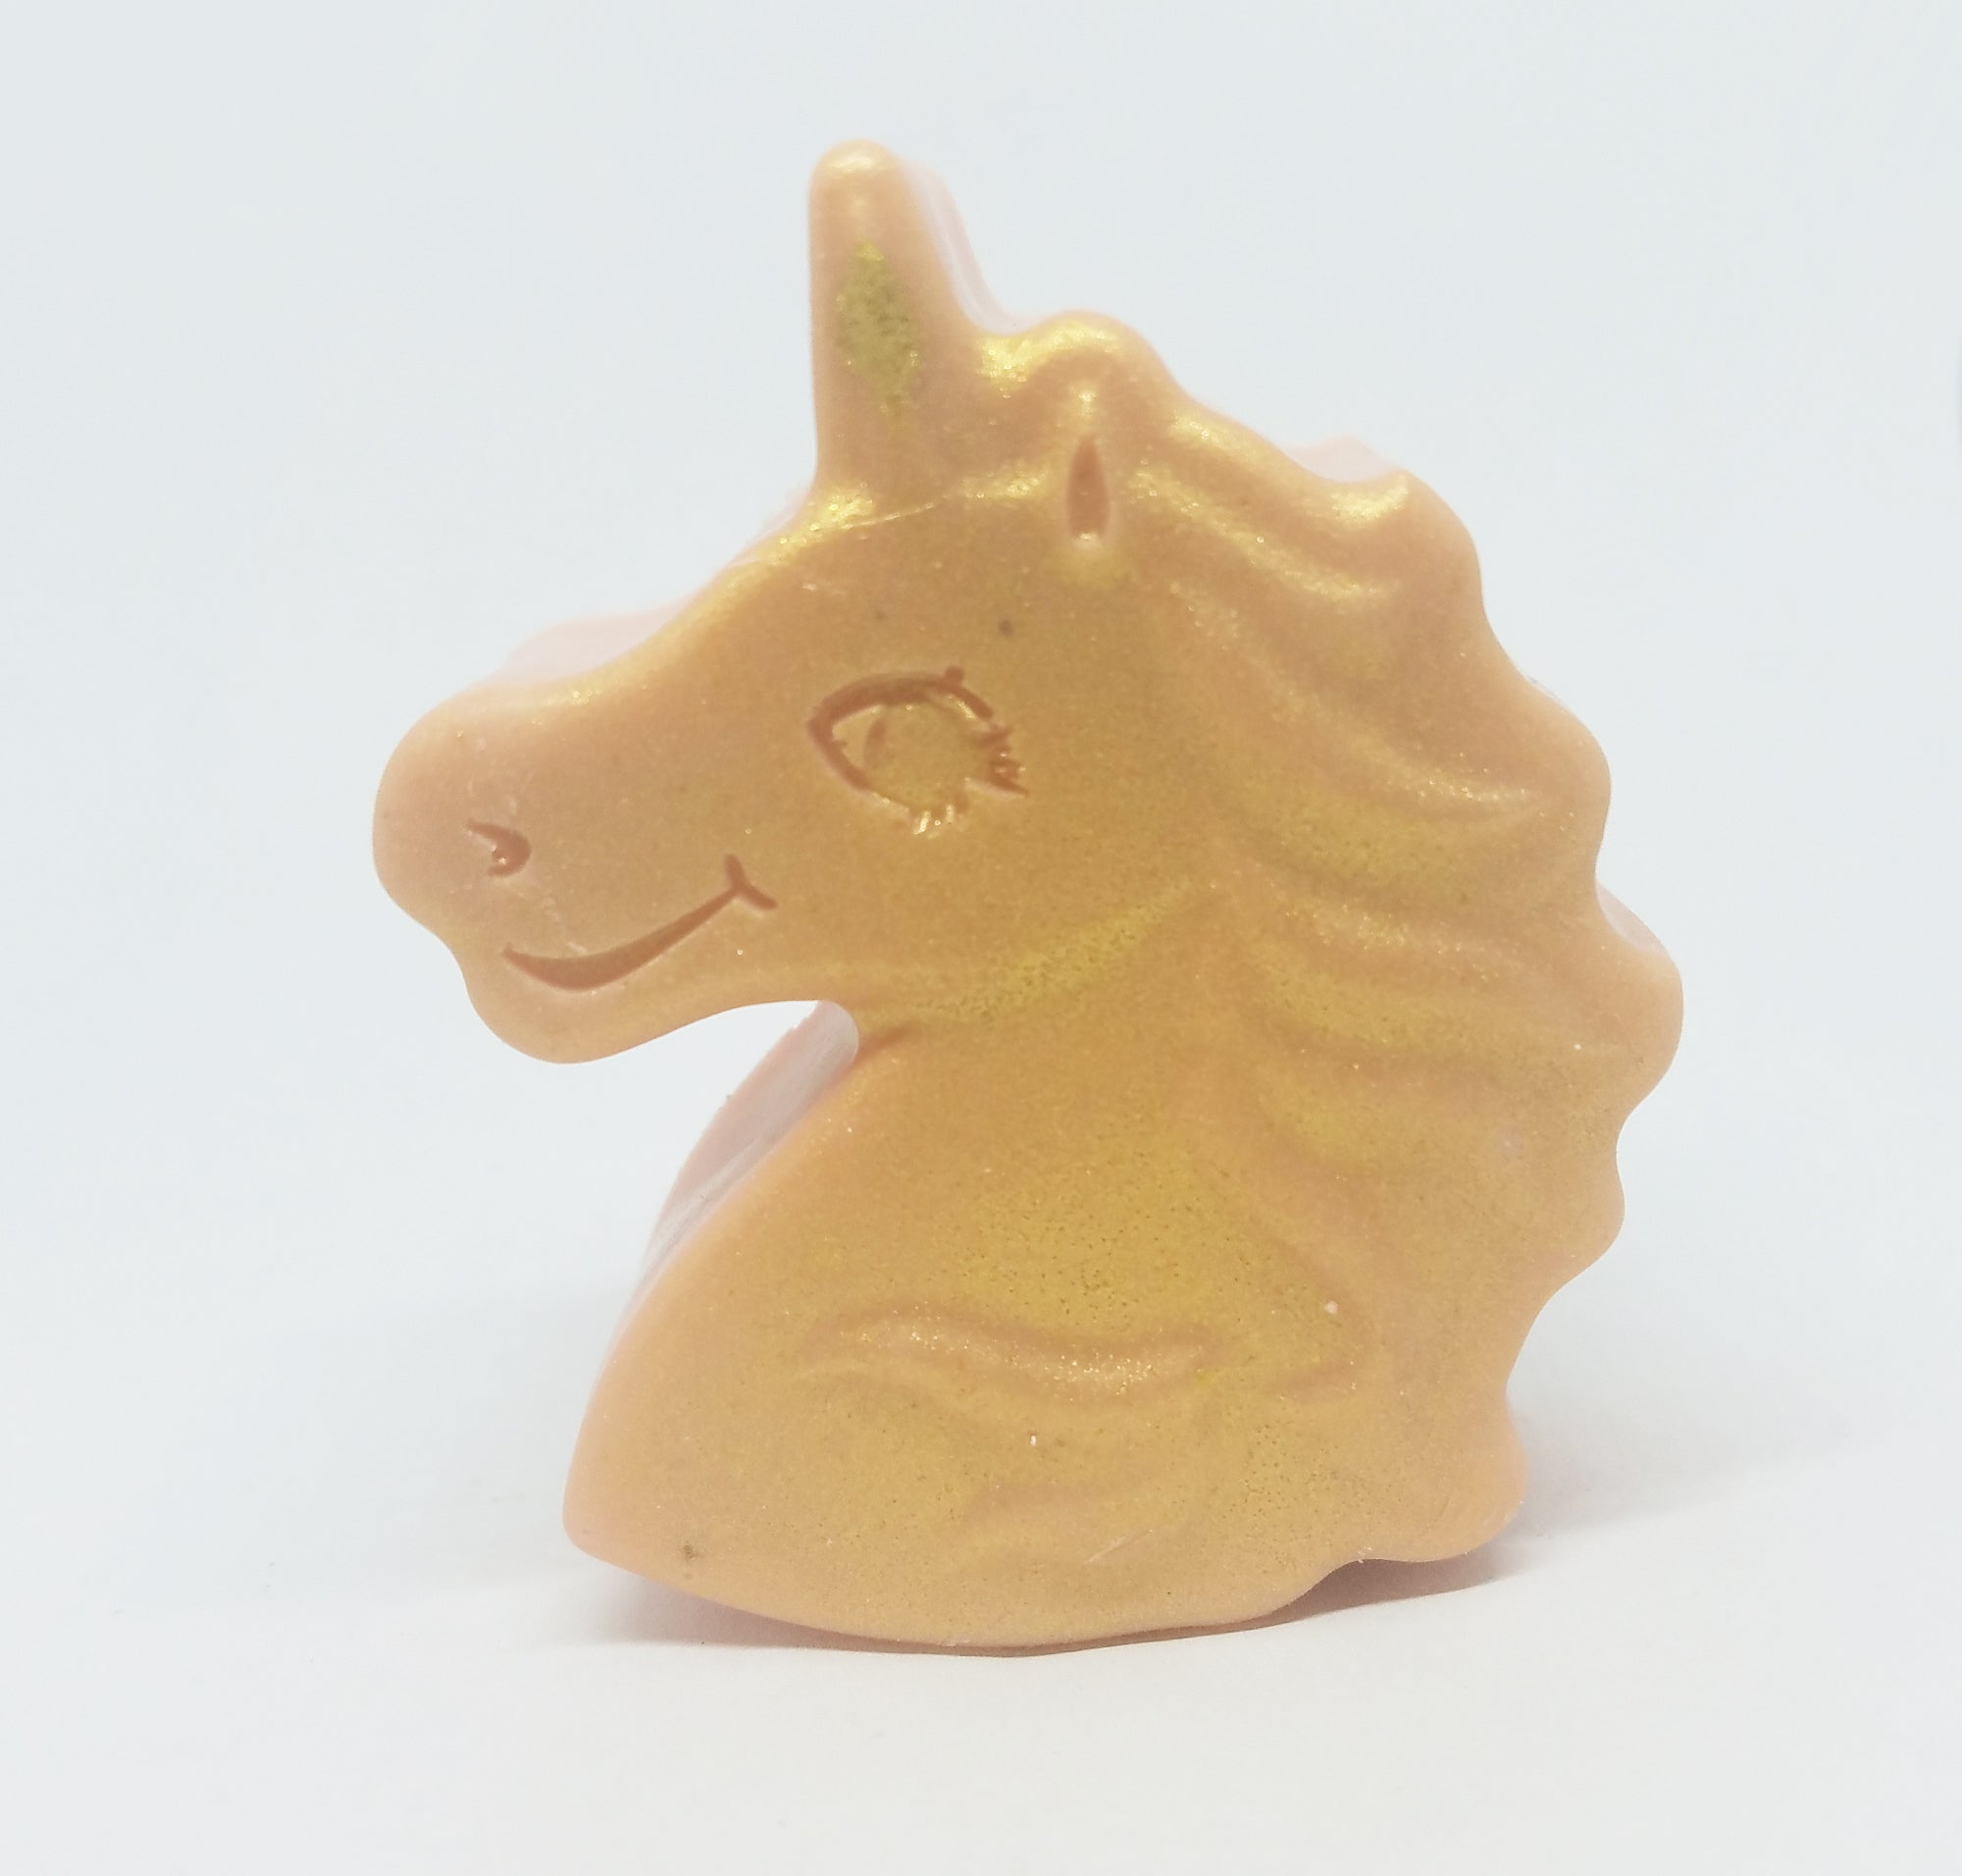 Snickerdoodle Unicorn Soap